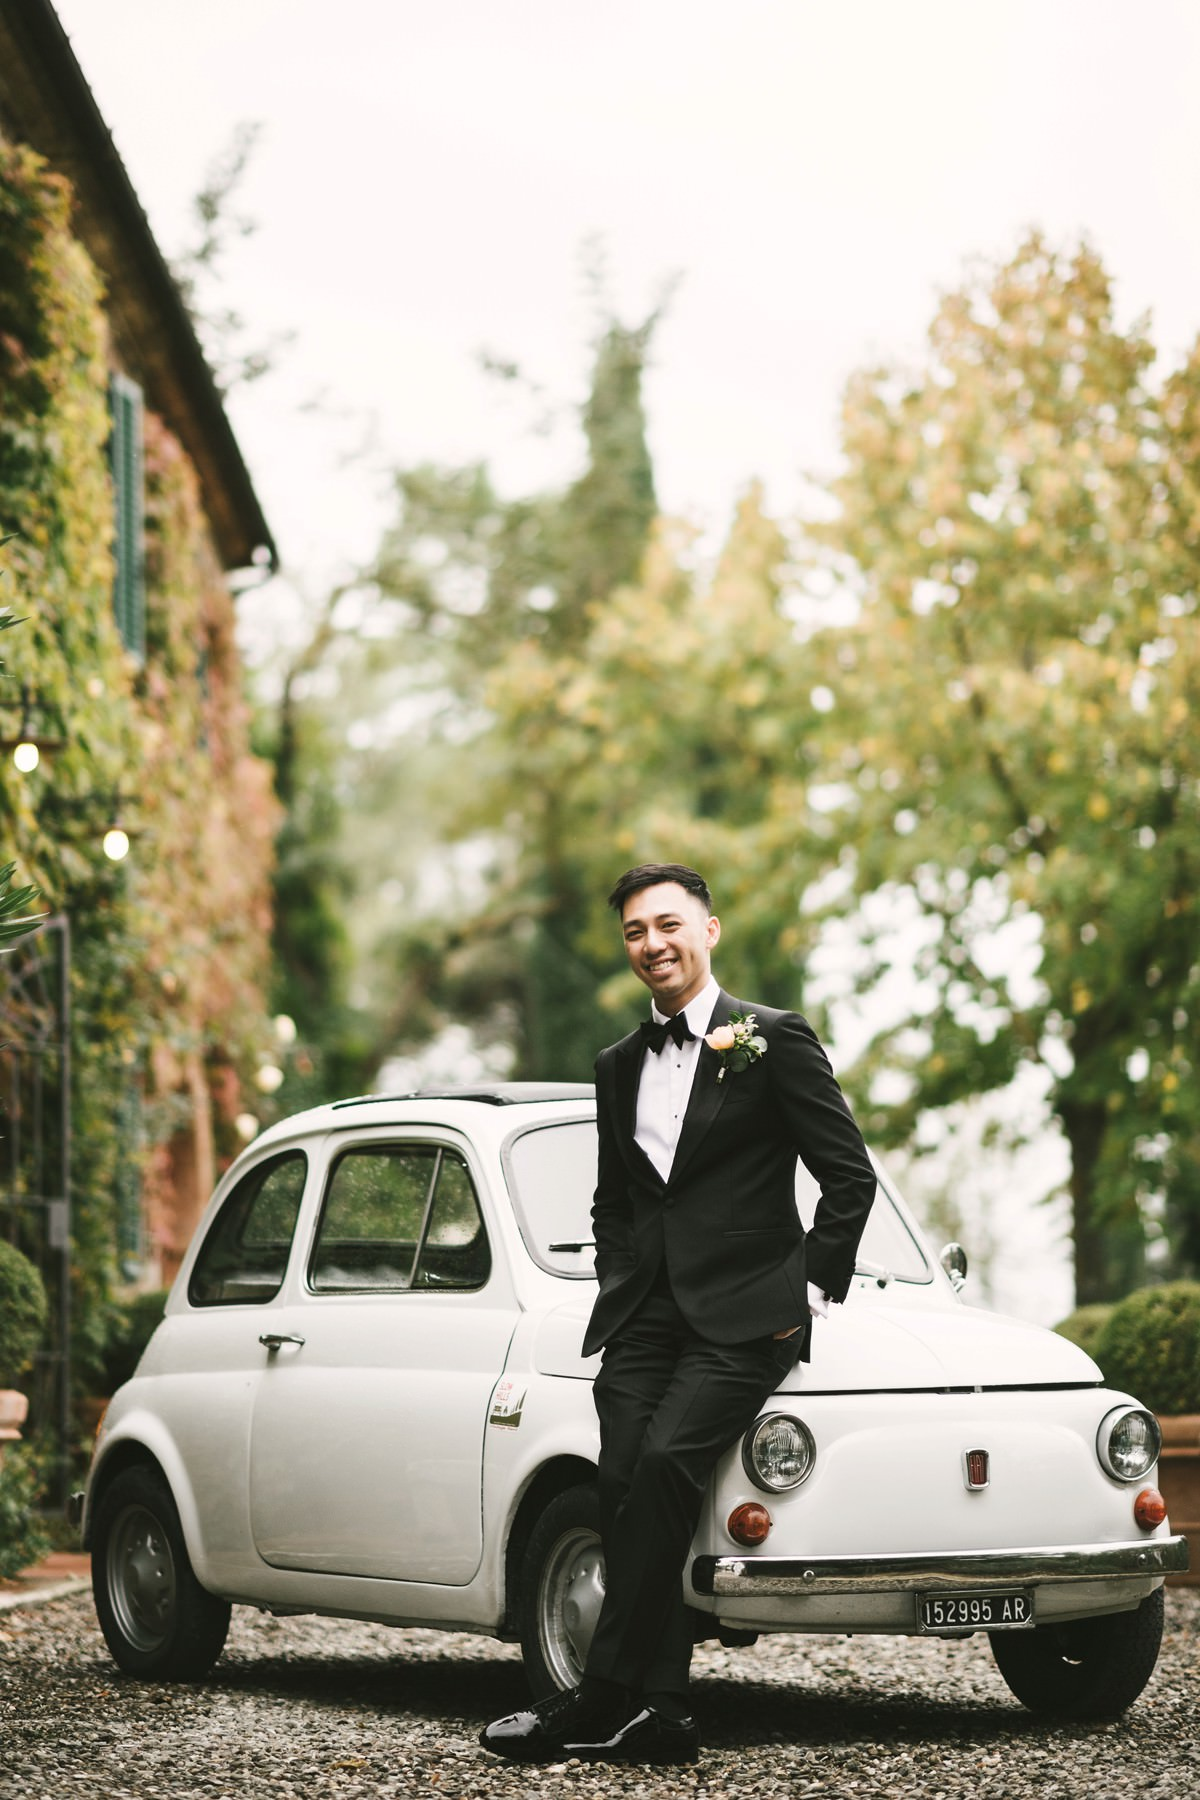 Elegant groom Huy with Fiat 500 in La Fornace wedding venue a perfect location to get married in Italy